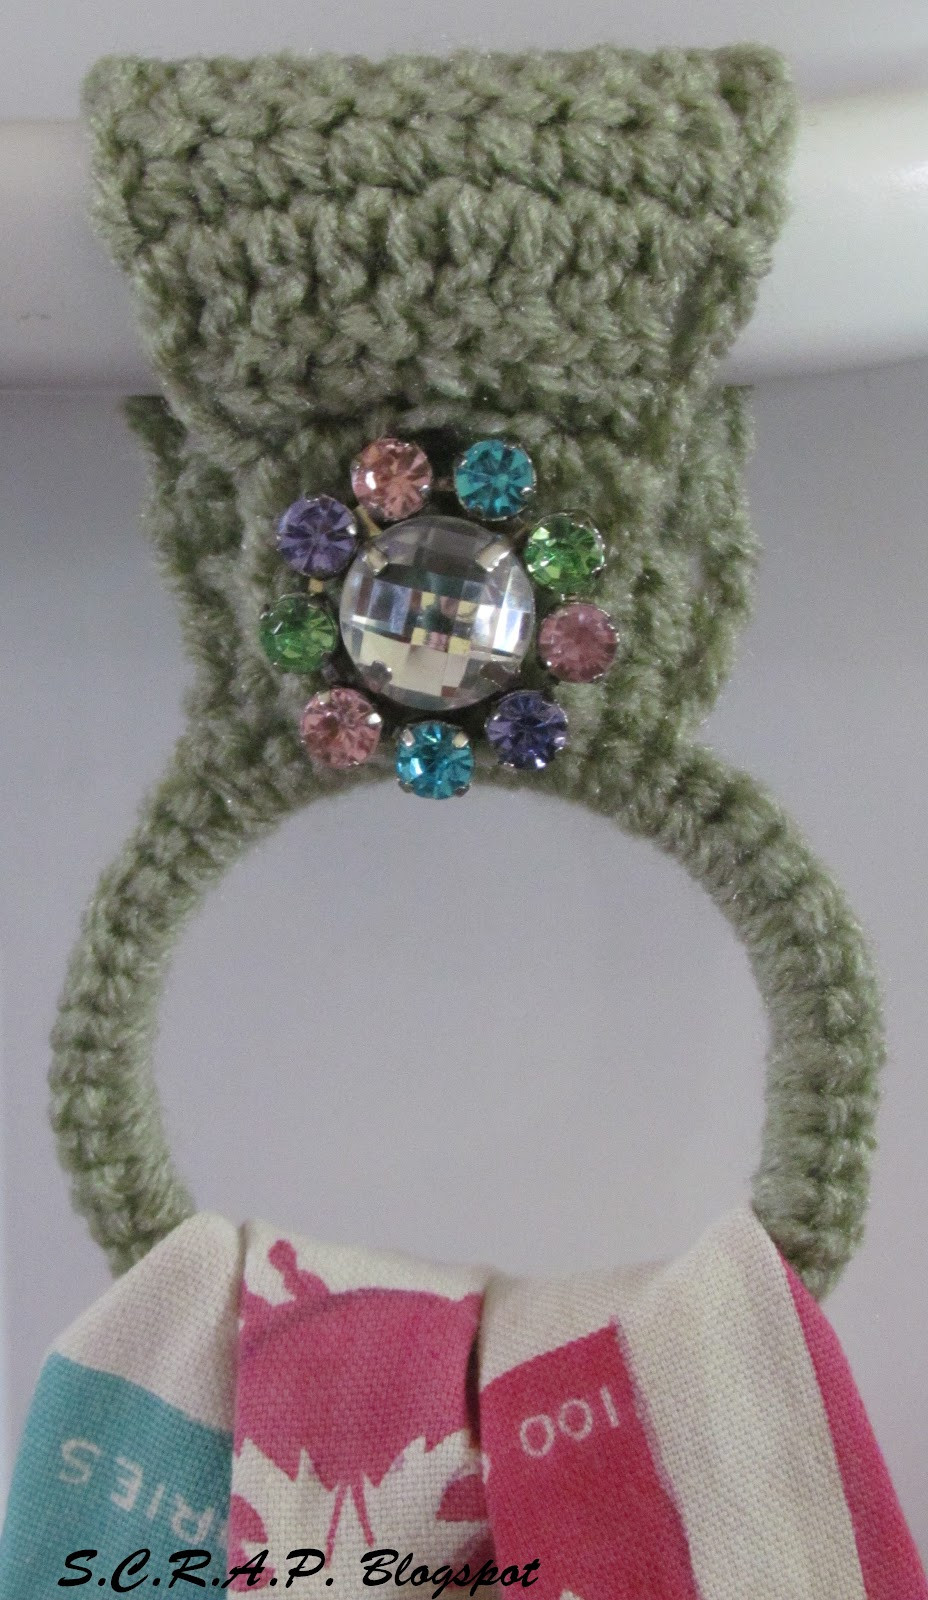 Crochet towel Ring Awesome S C R A P Scraps Creatively Reused and Recycled Art Of Gorgeous 46 Photos Crochet towel Ring